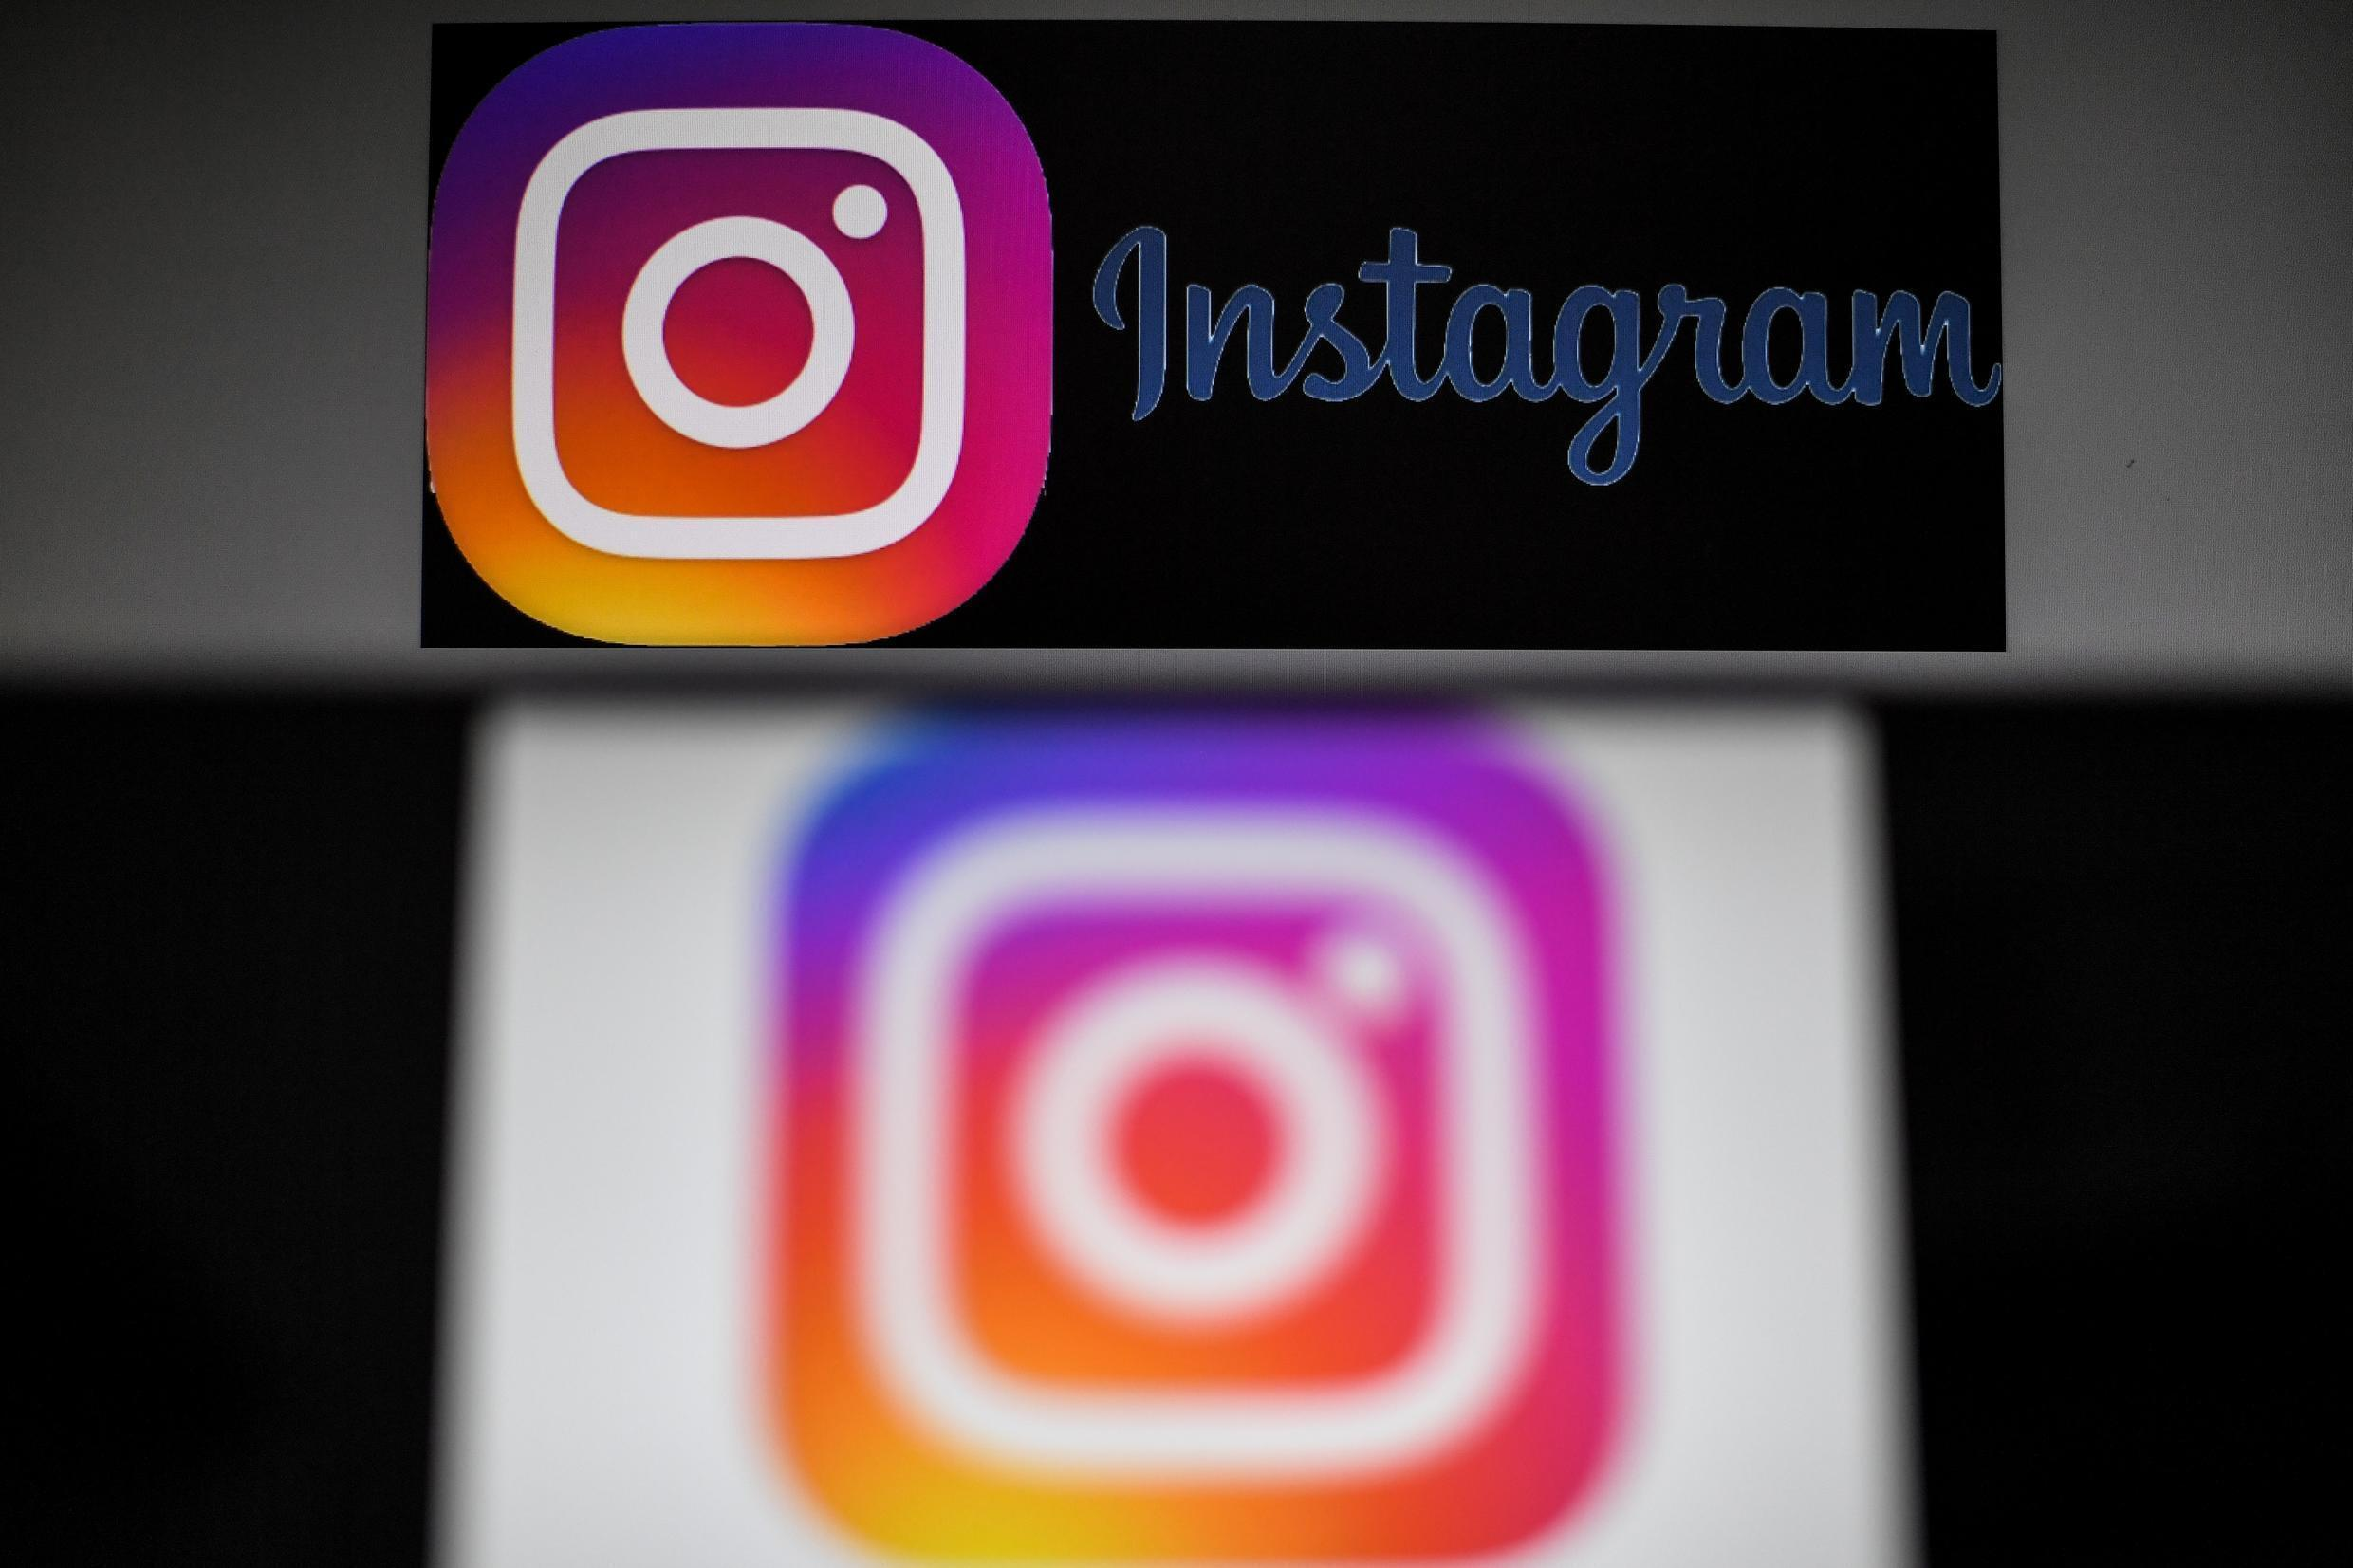 Three teens were charged on June 17, 2020 after a schoolgirl received death threats for posting an anti-Islam rant on Instagram.